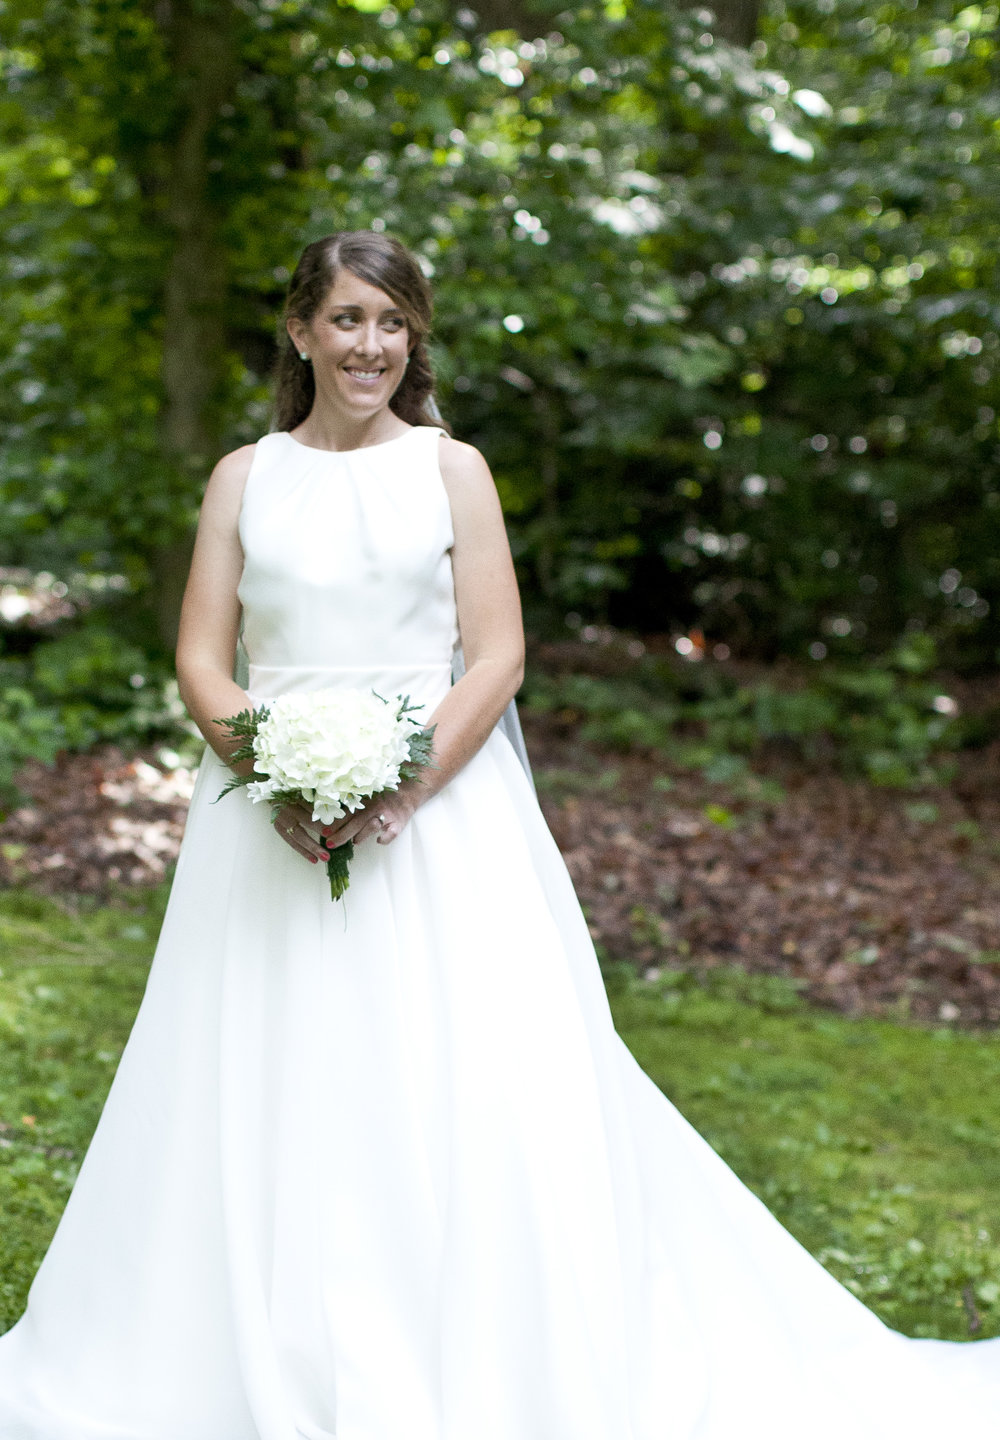 Bridal Portraits in Paris Mountain State Park Greenville South Carolina by Courtney Sample Photography